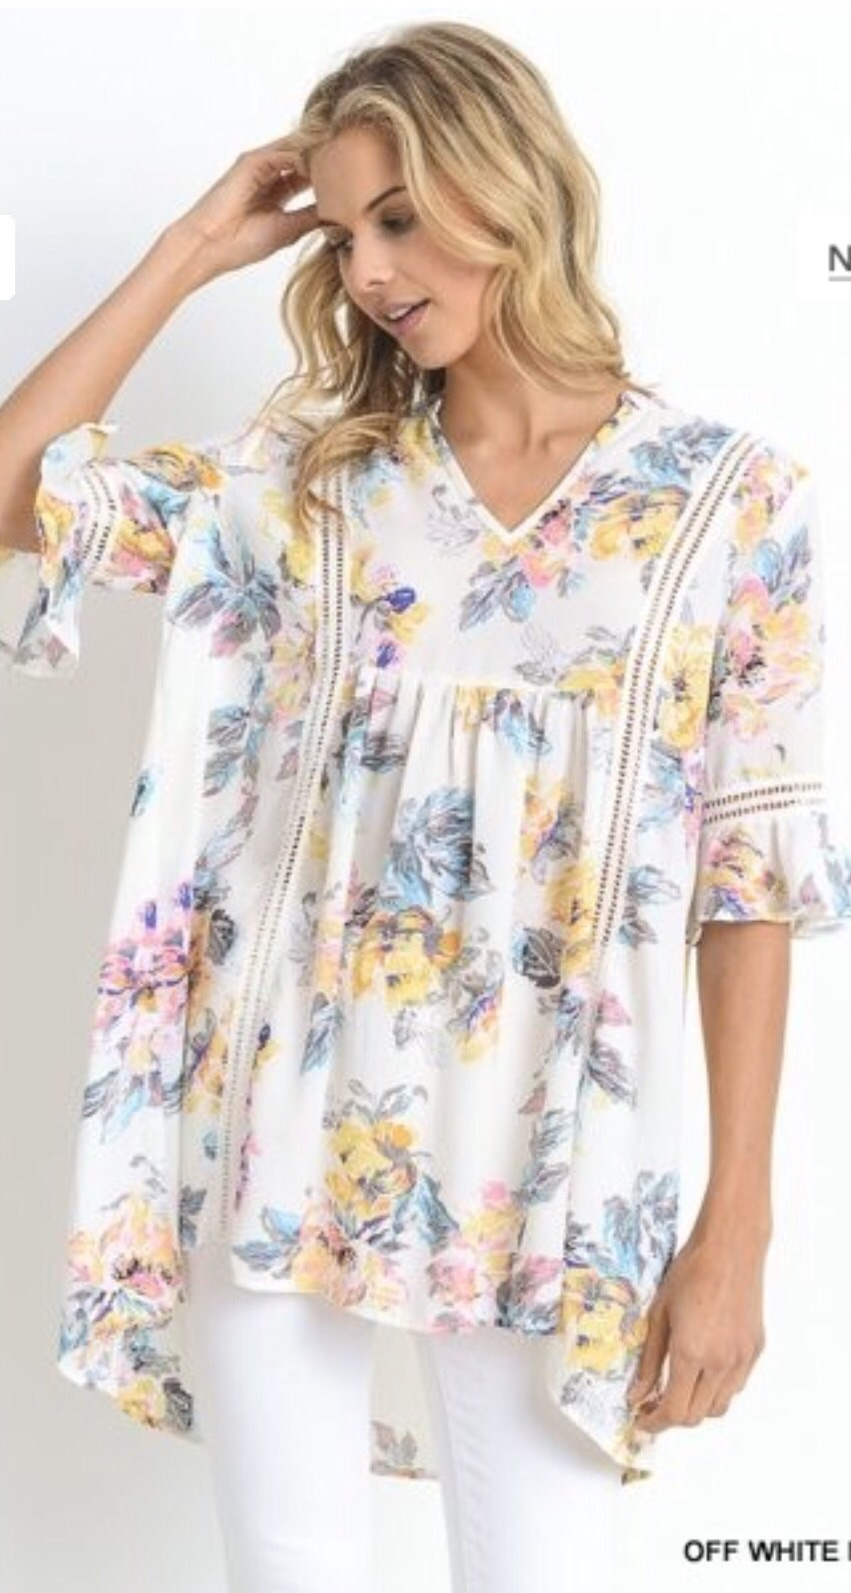 Jodifl Floral V-neck top